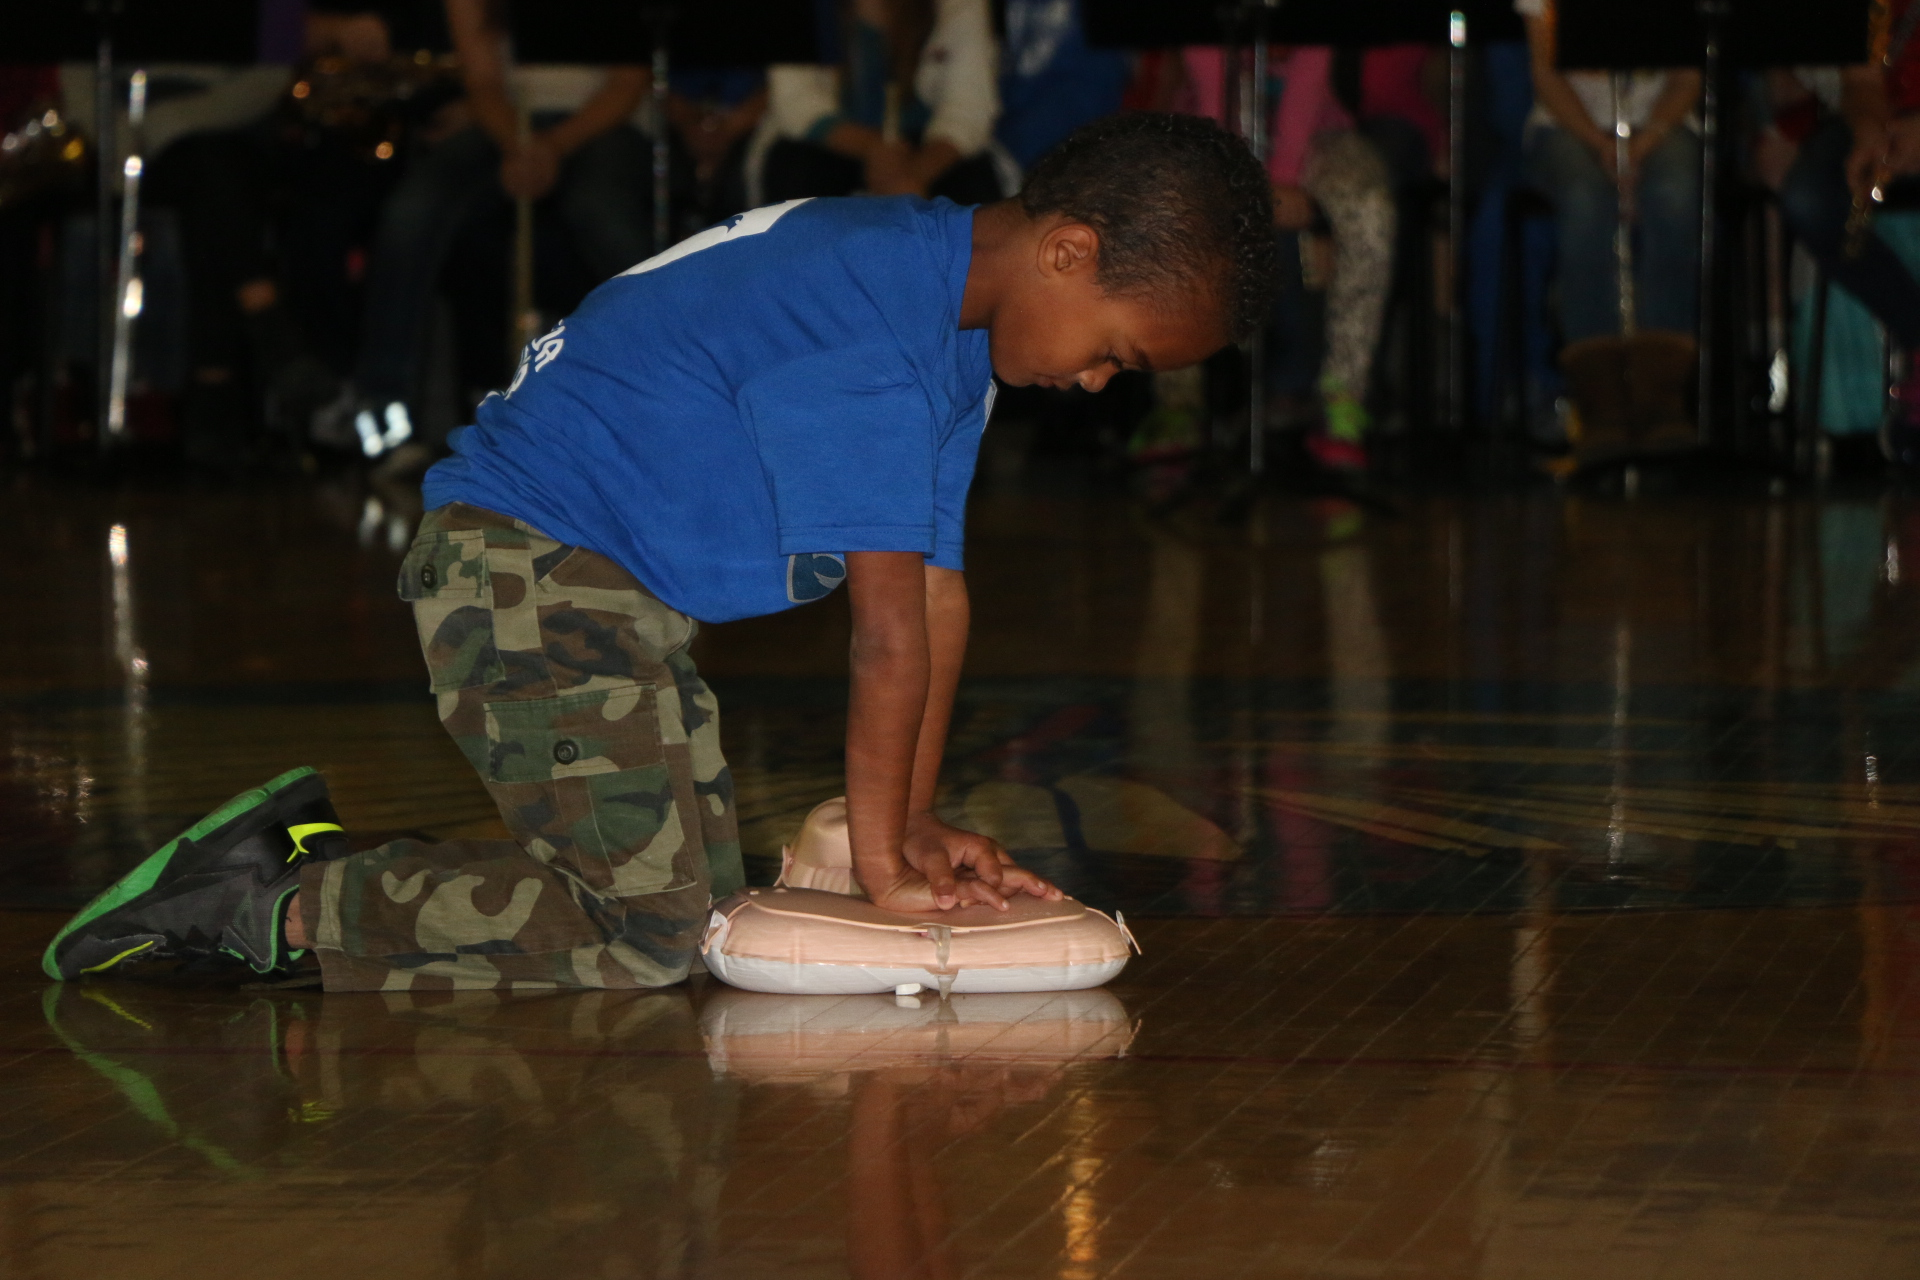 "Jaiden teaching others Hand CPR - At the age of 7, Jaiden wanted to take what he learned while attending a military event and share it during a Veteran's Day Assembly. His mother Kimberly McGraw was presenting to the students and faculty at Aux Sable Middle School with military veterans being honored in the community. Jaiden wanted to inspire others that any kid, any age can learn a new skill and teach it to others. He understood the limited time others have when in an emergency and the importance of knowing how to give CPR to save someone's life. So he told his mother, ""Someone could be saved if they knew this, so let's teach them"". Jaiden might be little but has a huge heart for motivating others through words and actions!"